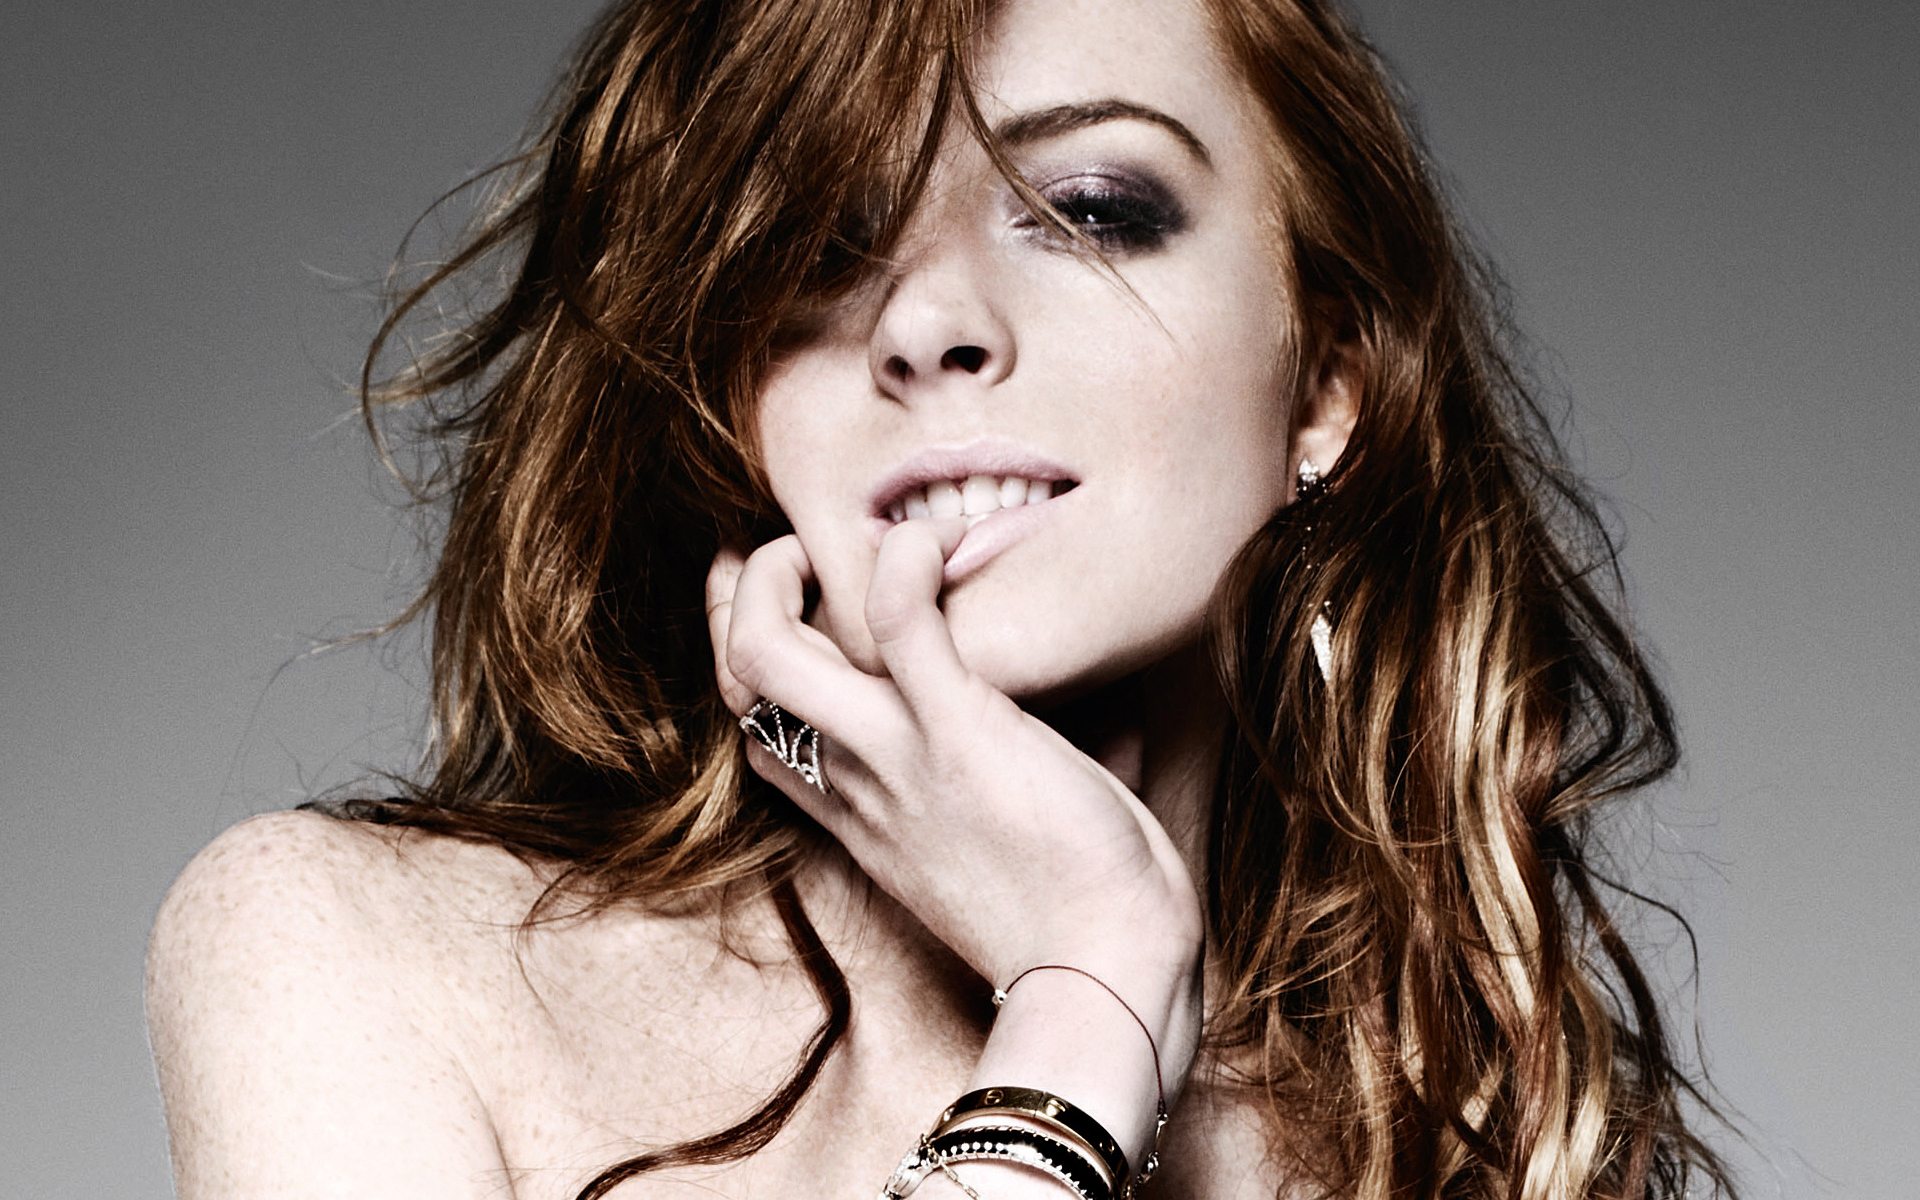 Lindsay Lohan Picture  Wallpaper, High Definition, High Quality